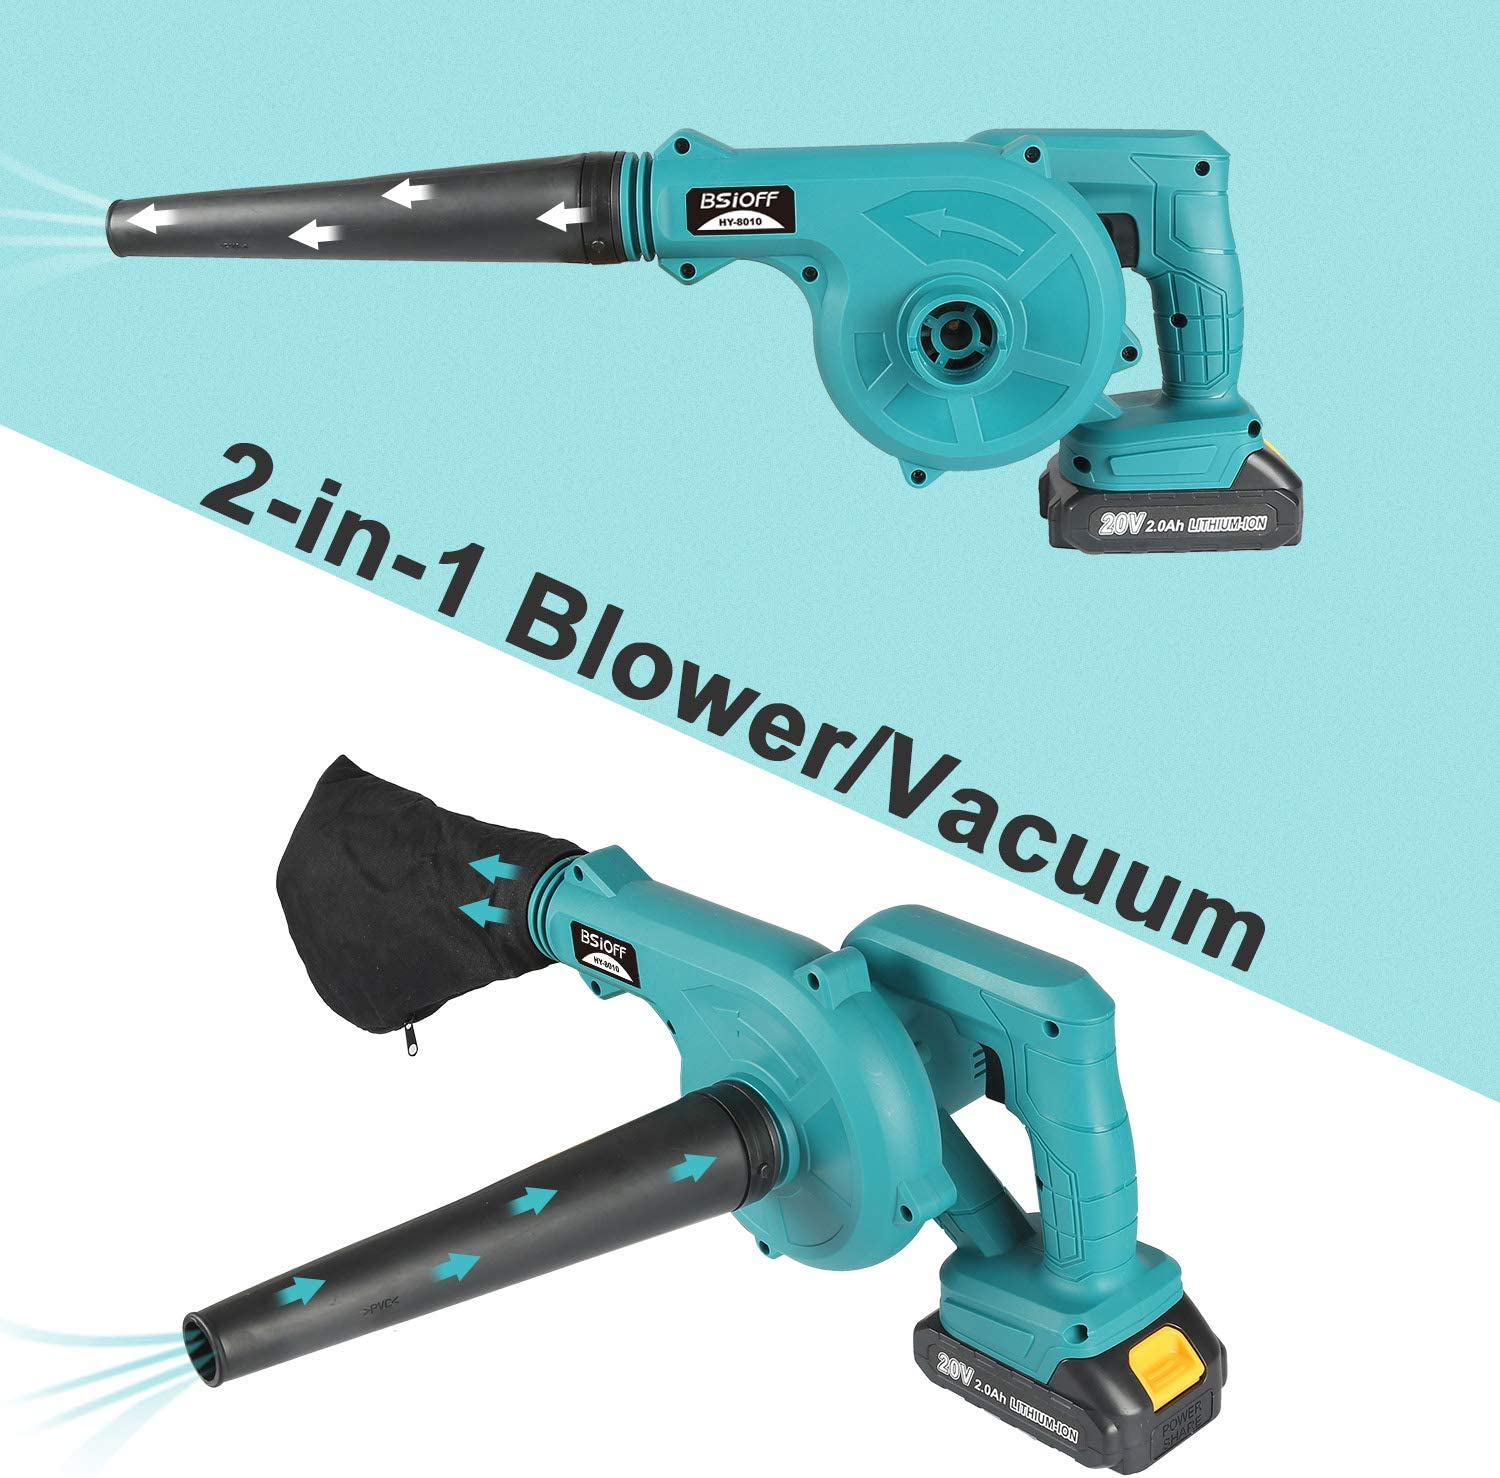 Bsioff Leaf Blower//Electric blower//Cordless blower Lithium ions, air volume 2.8 m/³, idle speed: 0-18000 rpm, with a battery and charger